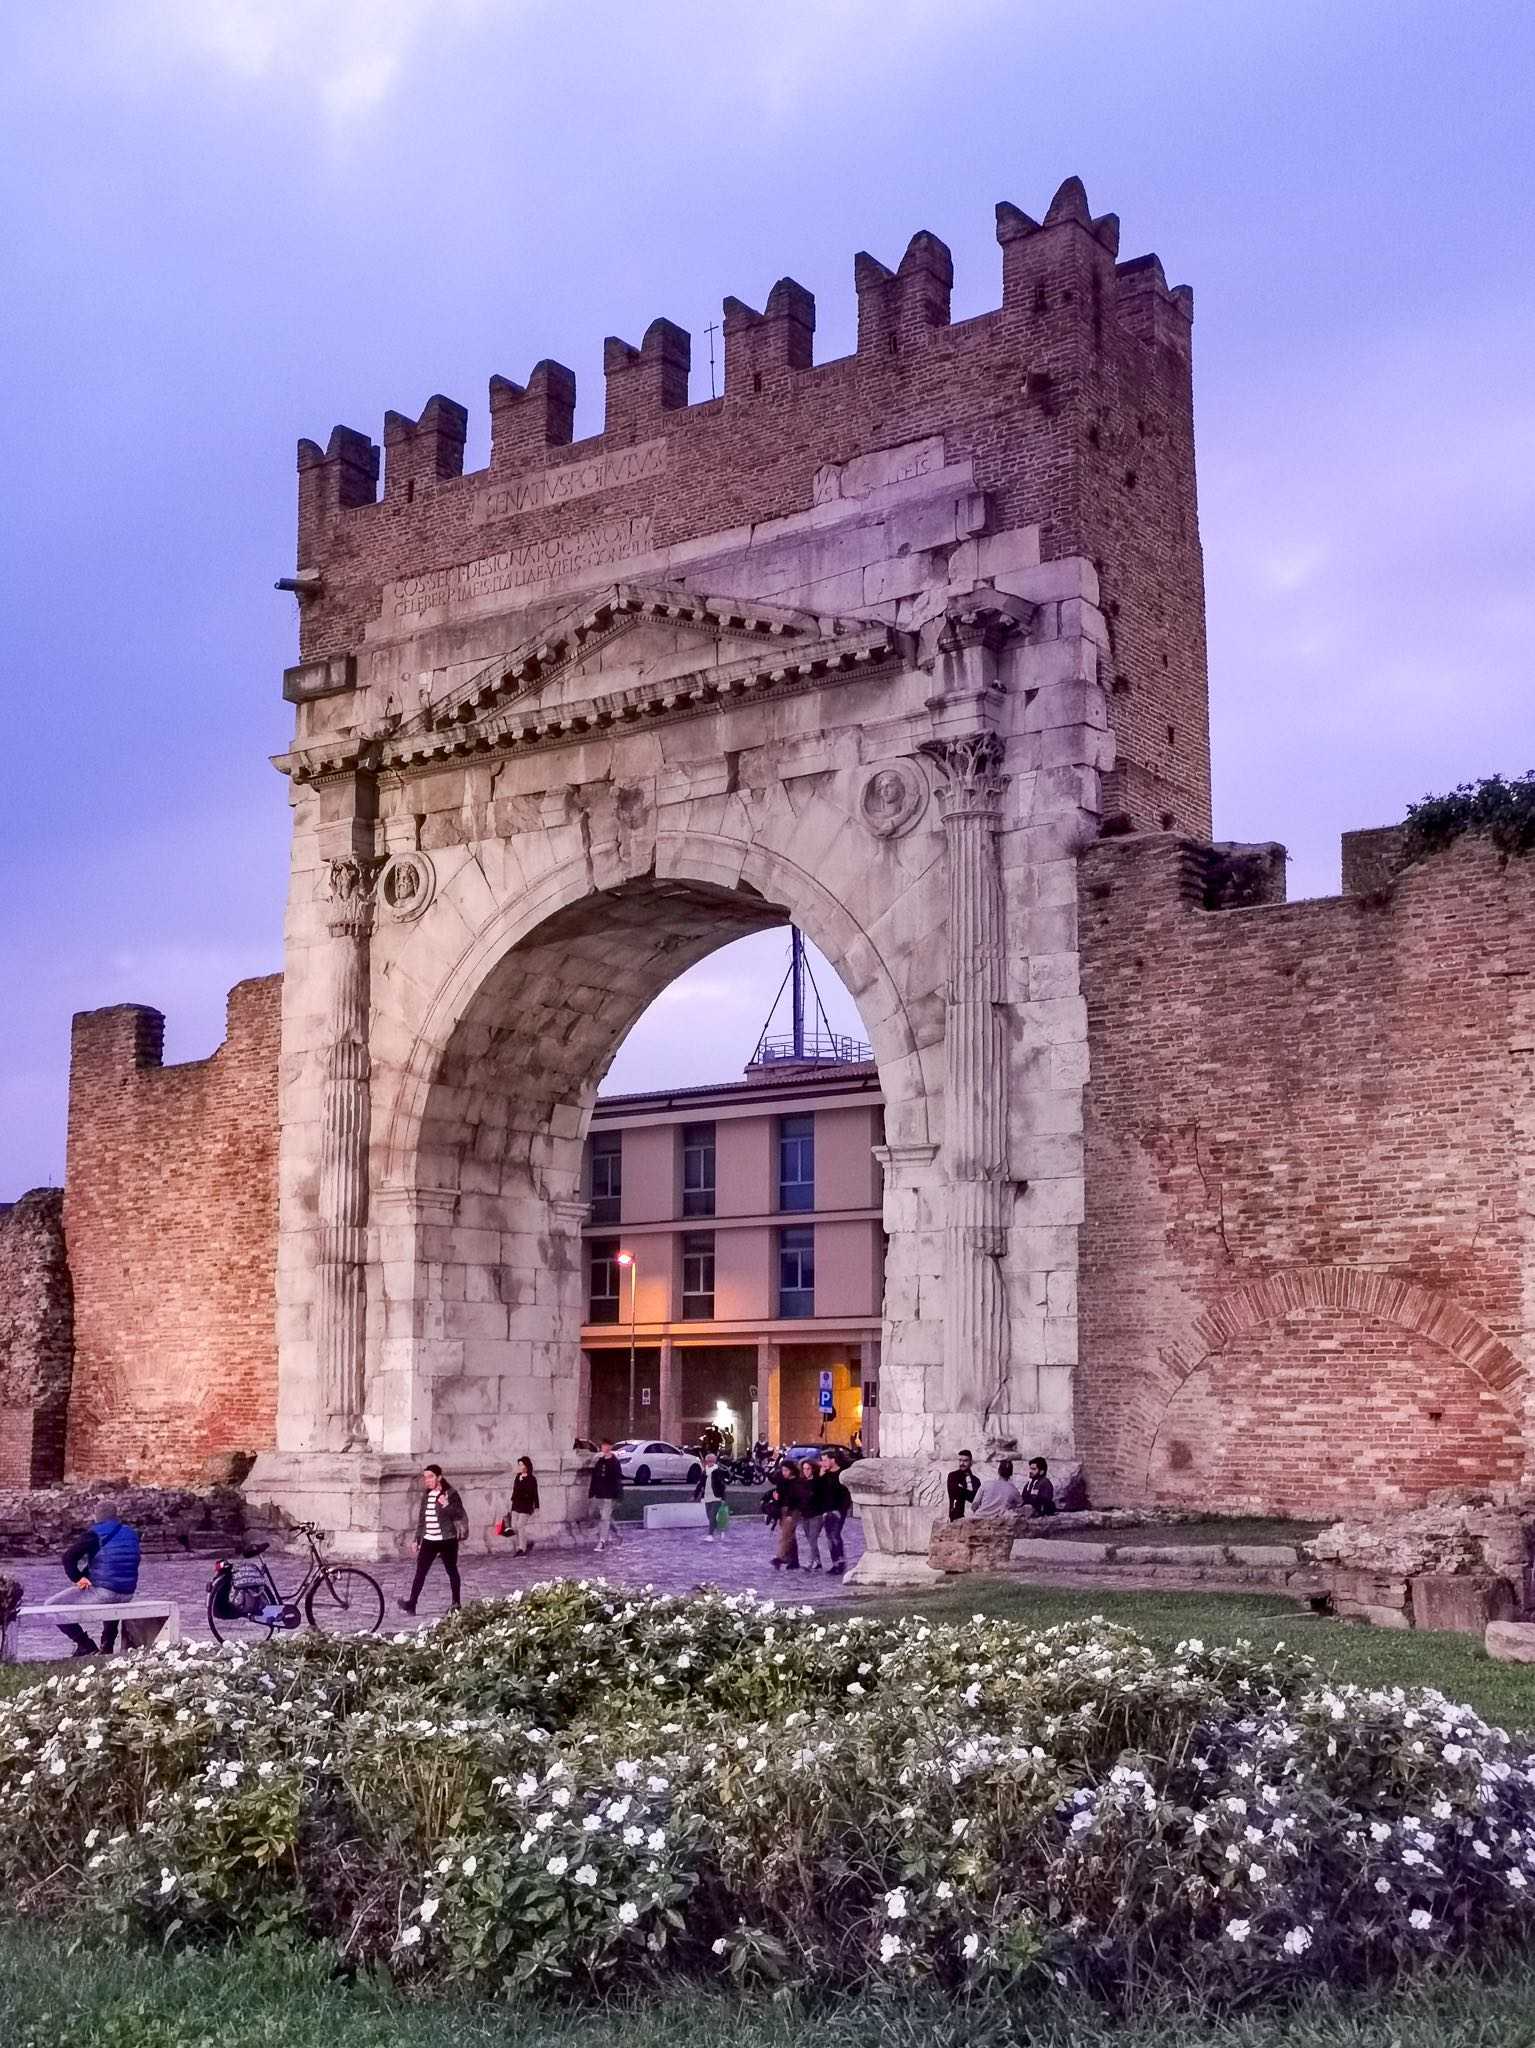 The Arch of Augustus at Rimini